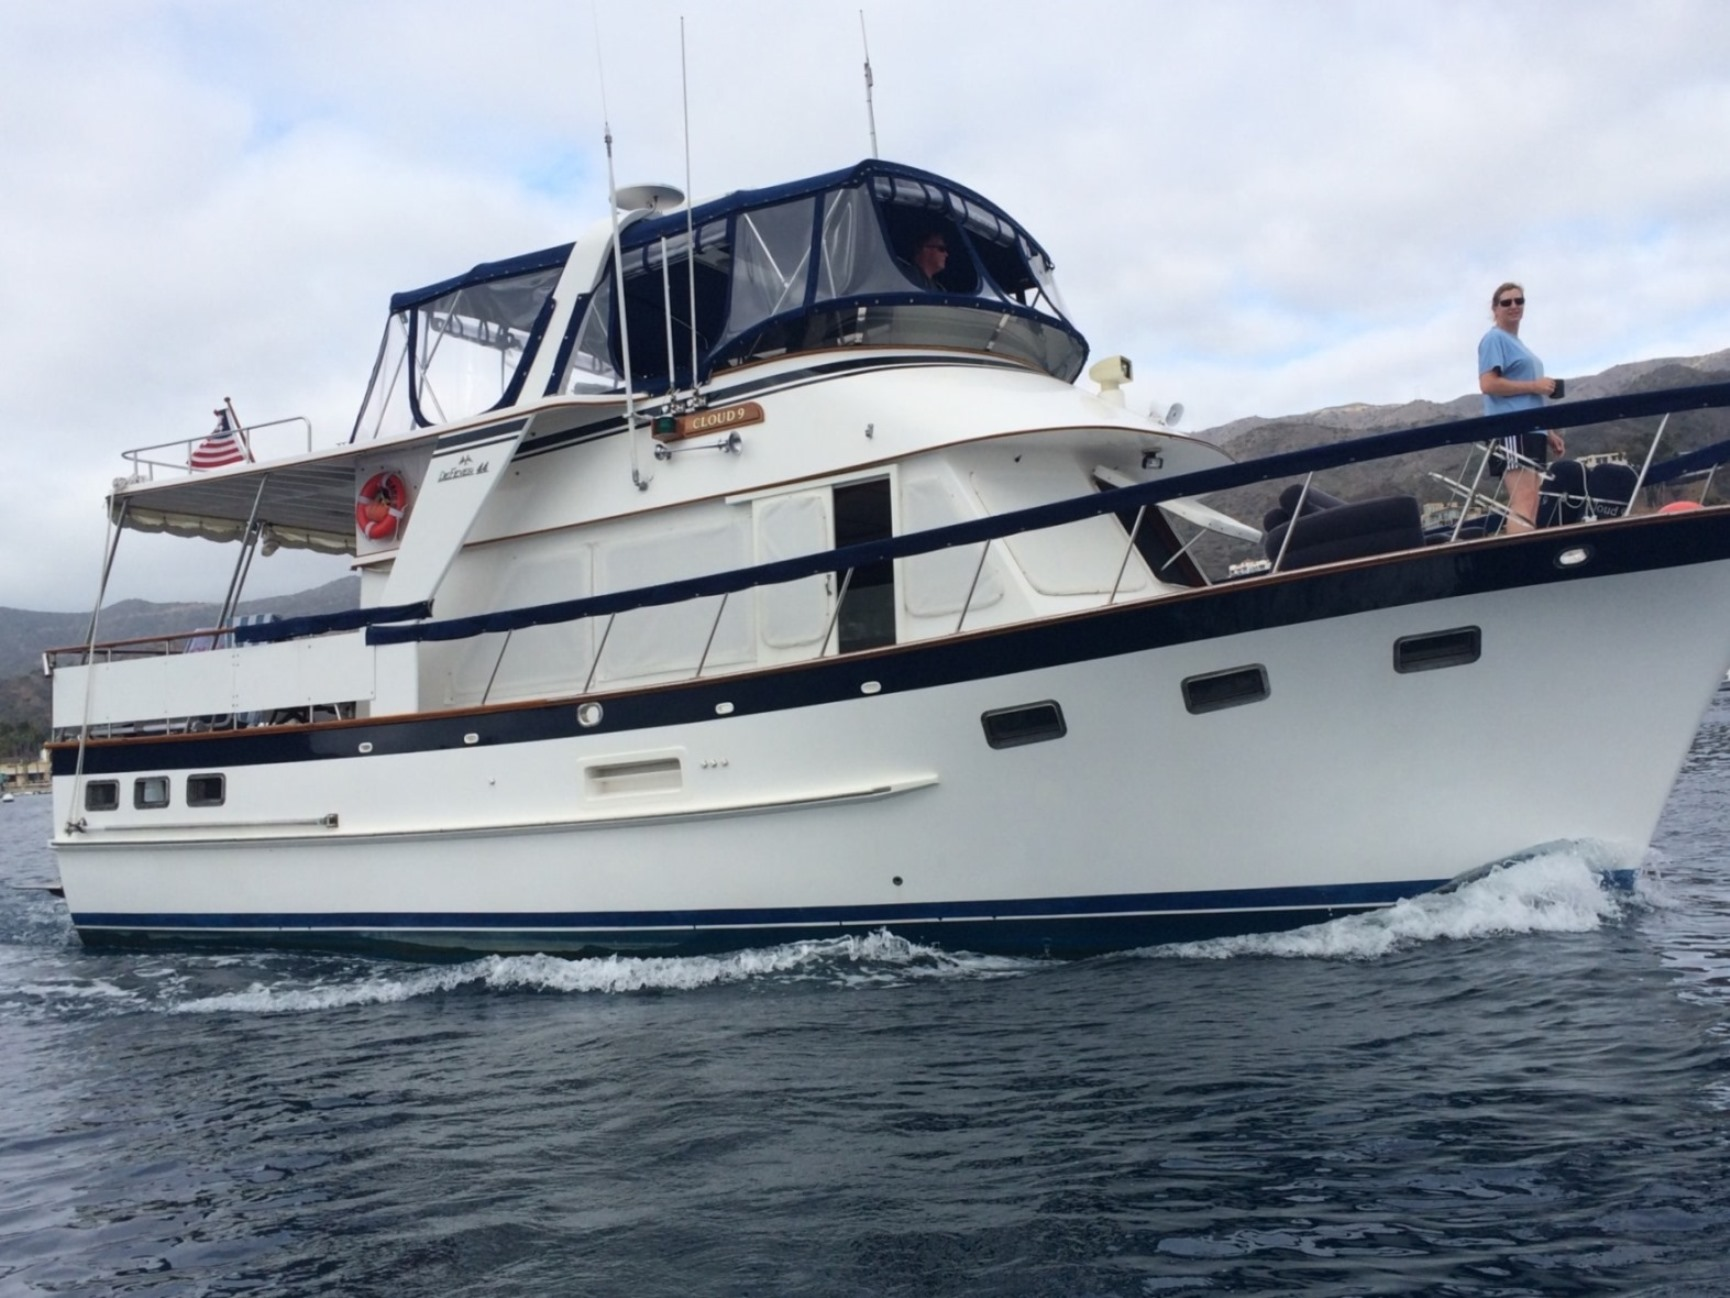 Defever Cruisers A Club For Yachting Enthusiasts With A Passion For Defever Vessels And The Cruising Life